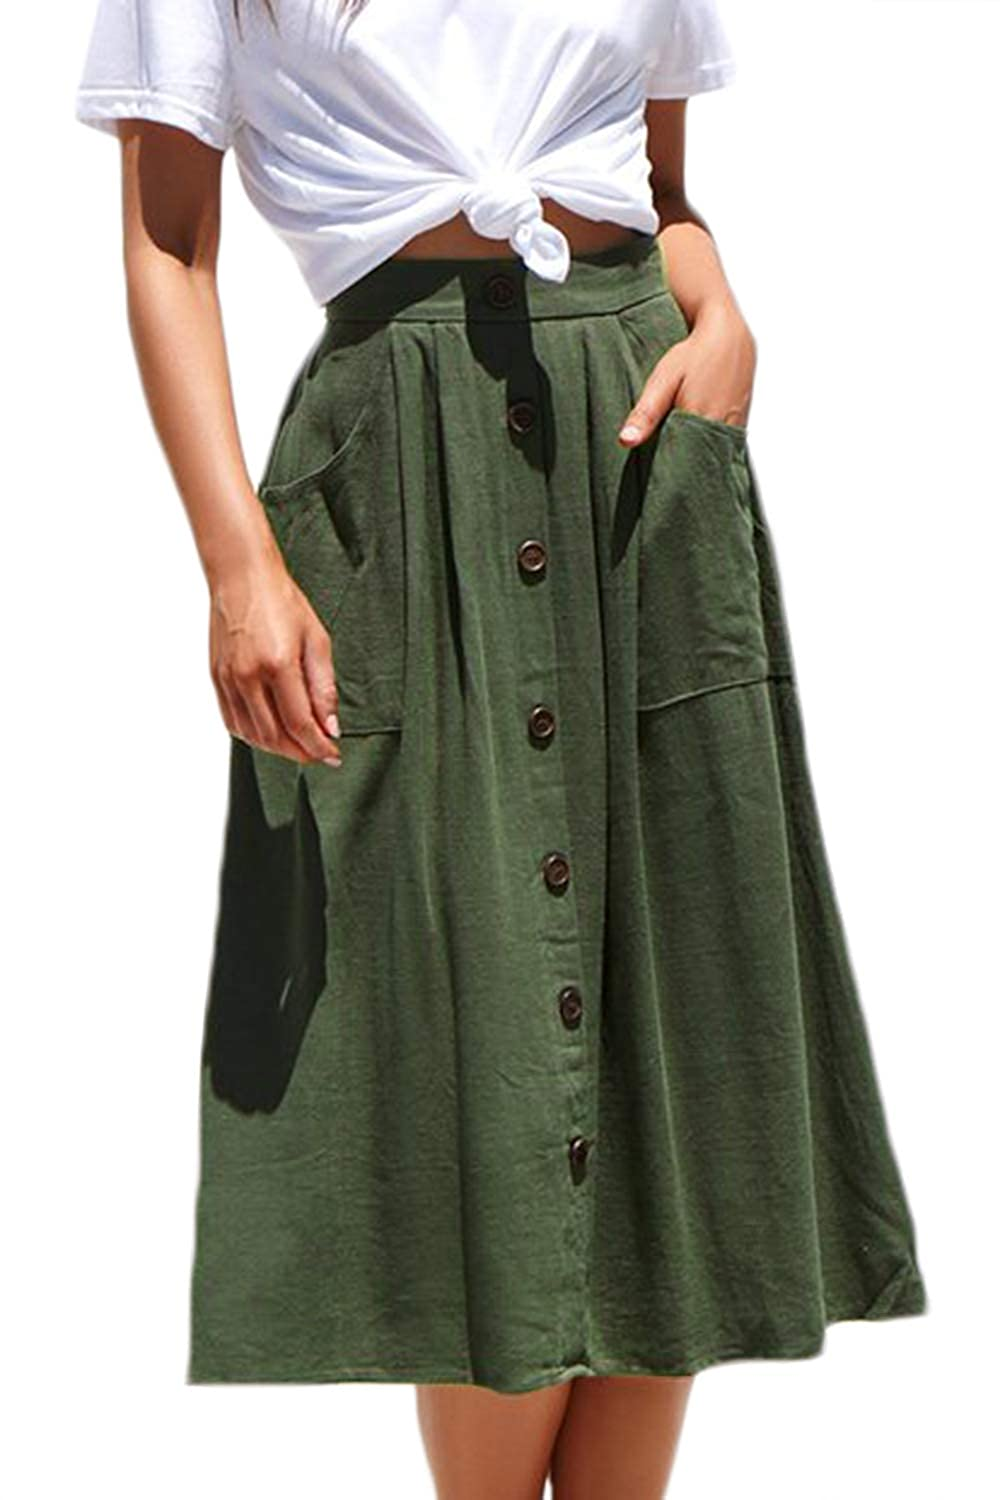 variety design cheap price outlet online Meyeeka Womens Casual High Waist Flared A-line Skirt Pleated Midi Skirt  with Pocket